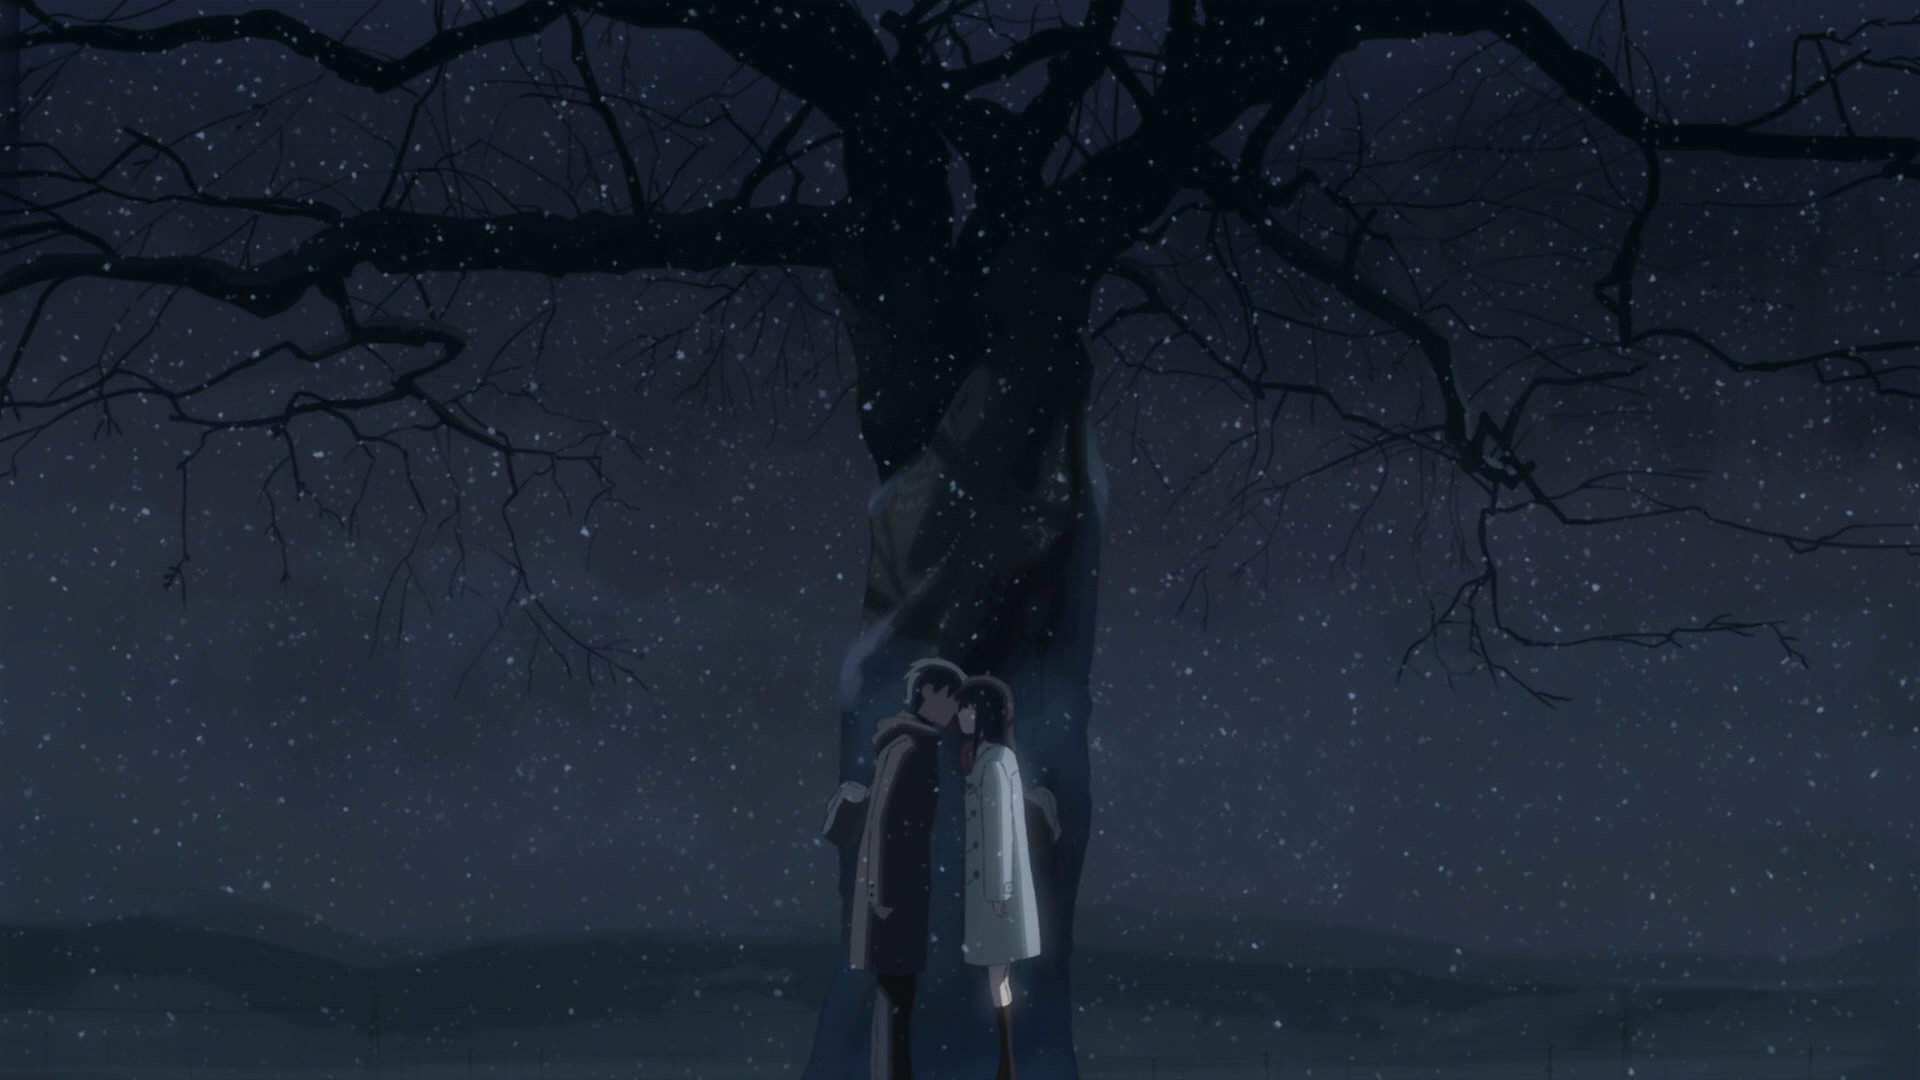 Awesome 5 (cm) Centimeters Per Second free wallpaper ID:90041 for hd 1080p desktop